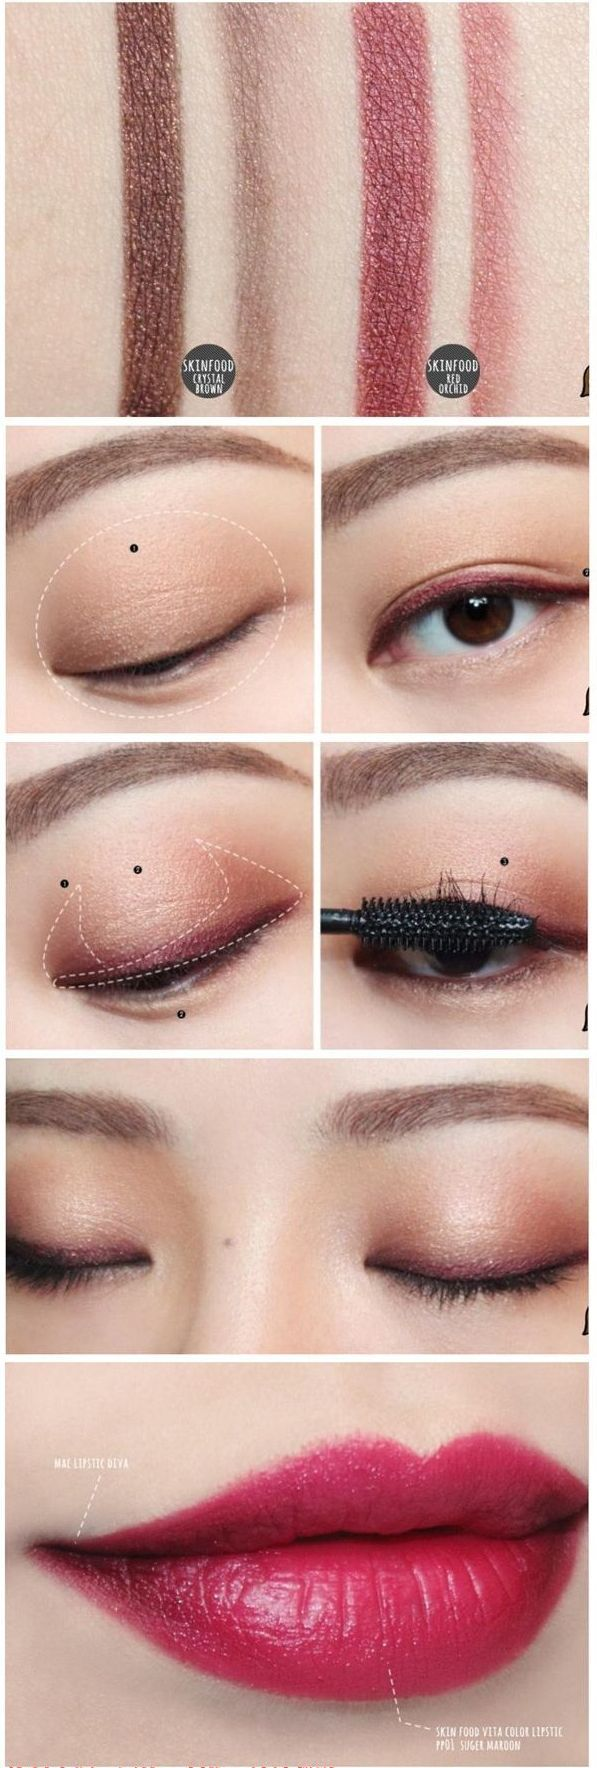 Find this Pin and more on All About Make Up by zybonic.